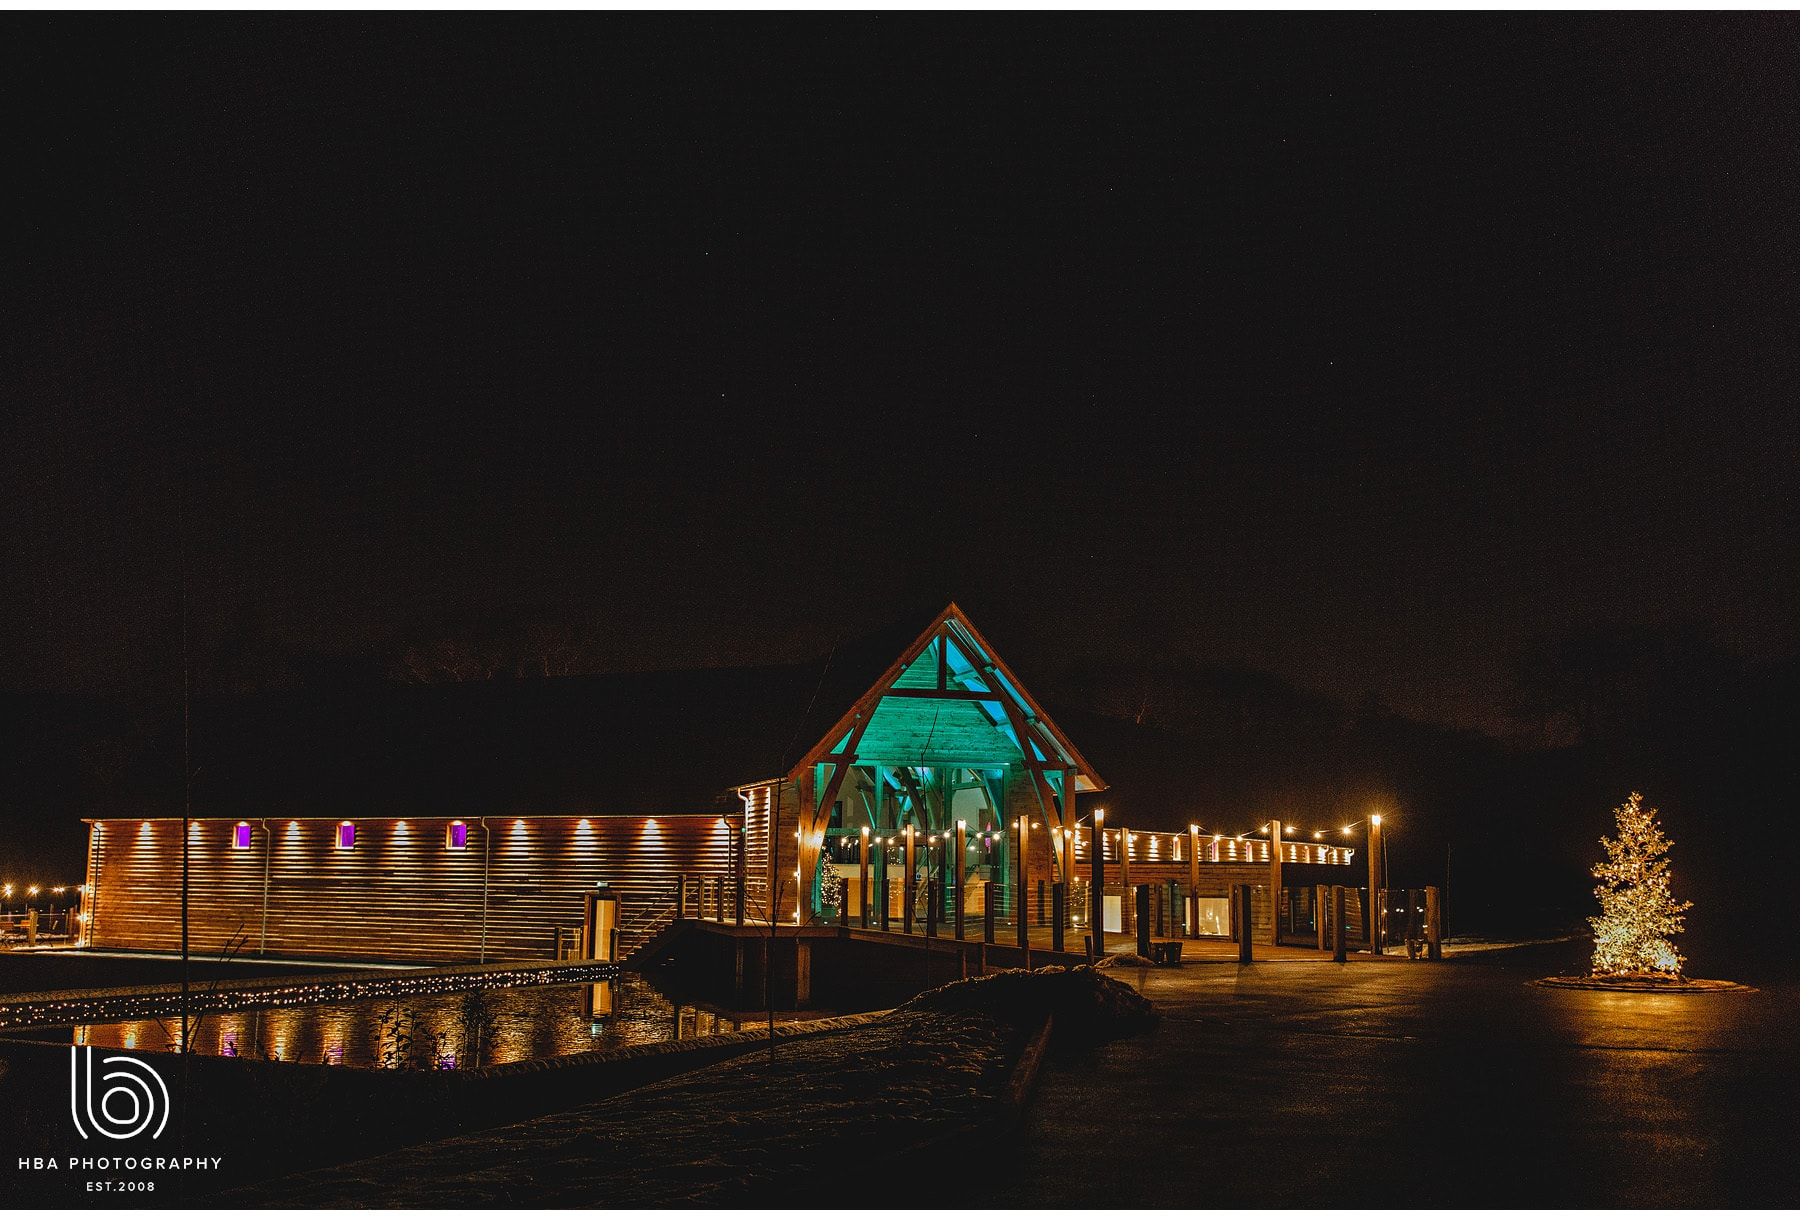 The Mills Barns at night